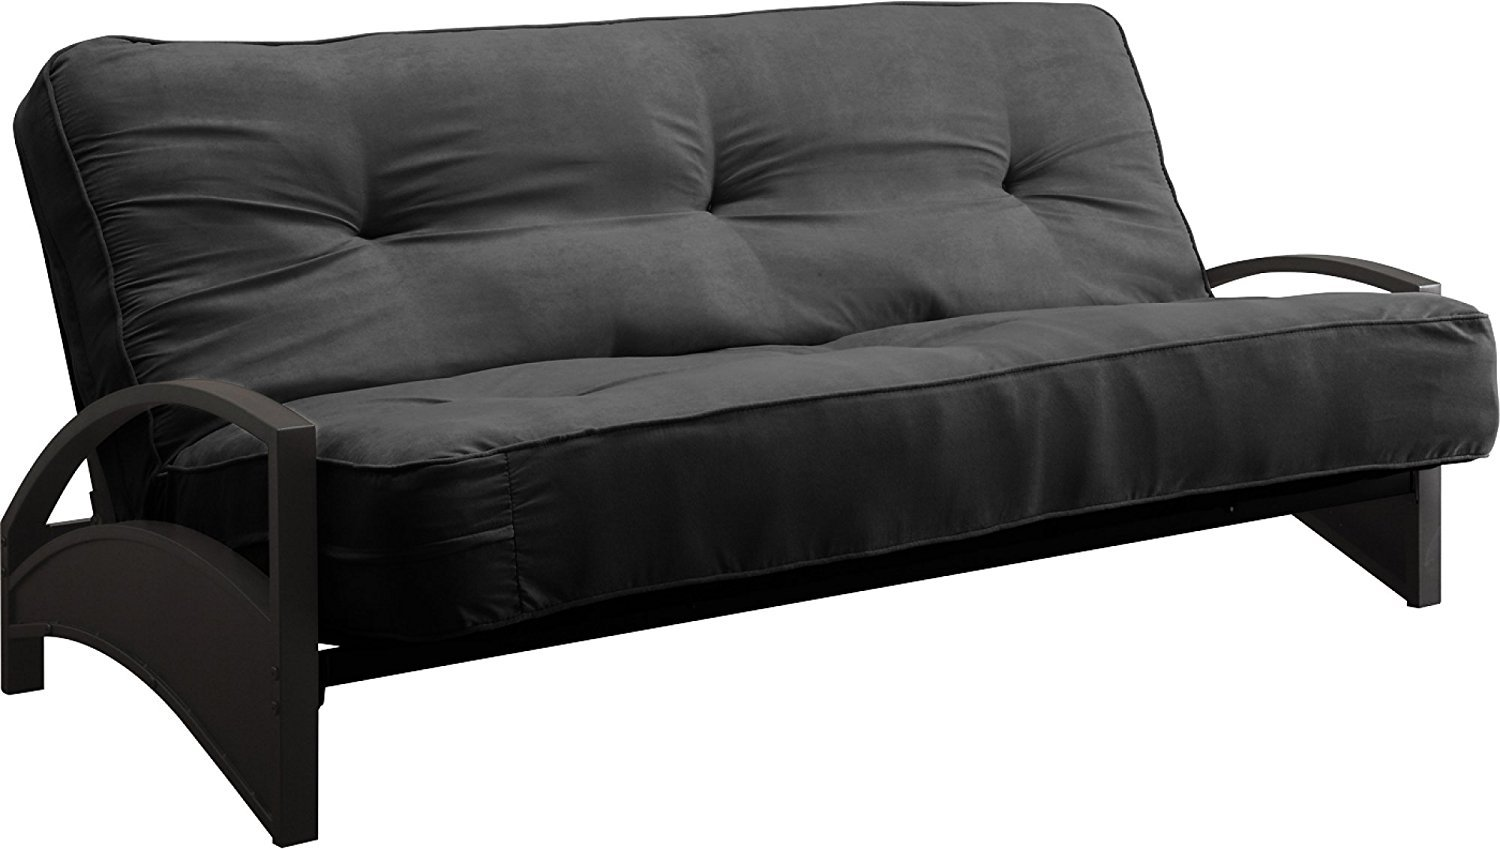 dhp 8 inch independently encased coil premium futon mattress full size black best rated in futon mattresses  u0026 helpful customer reviews   amazon    rh   amazon